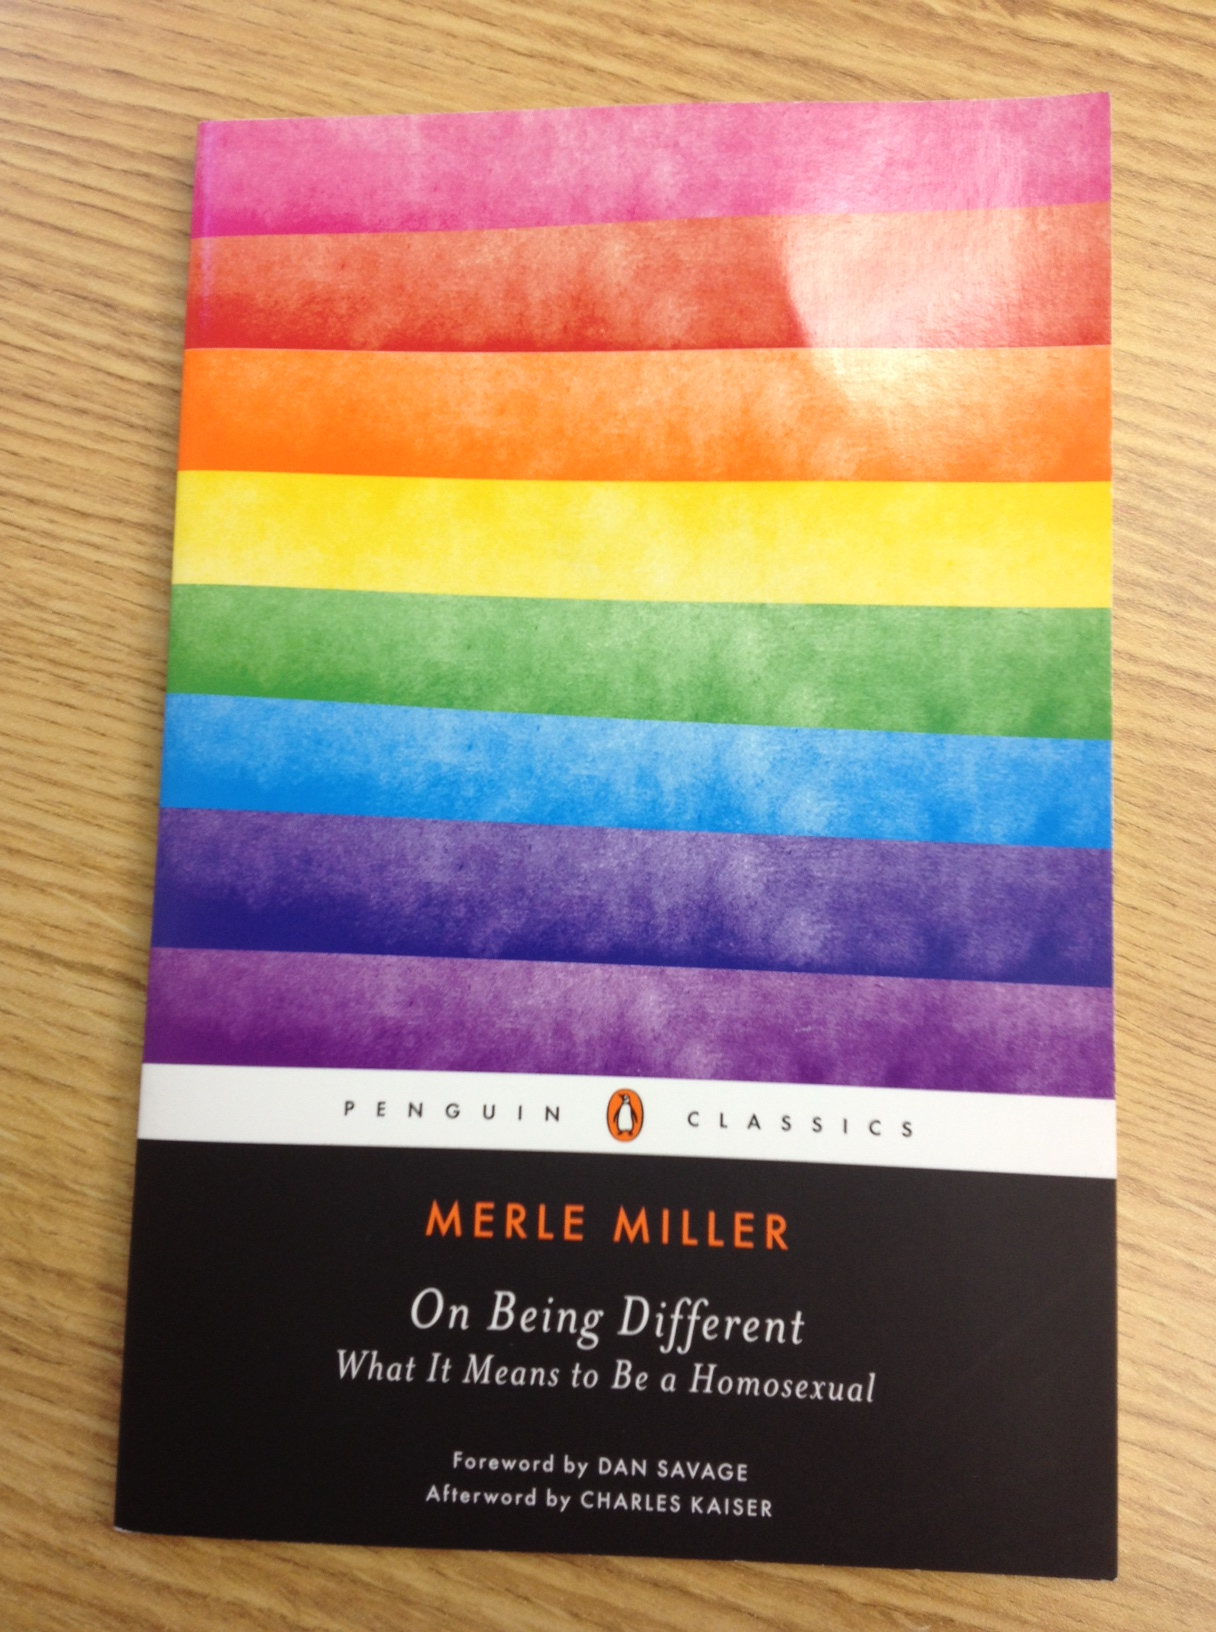 on being different merle miller essay